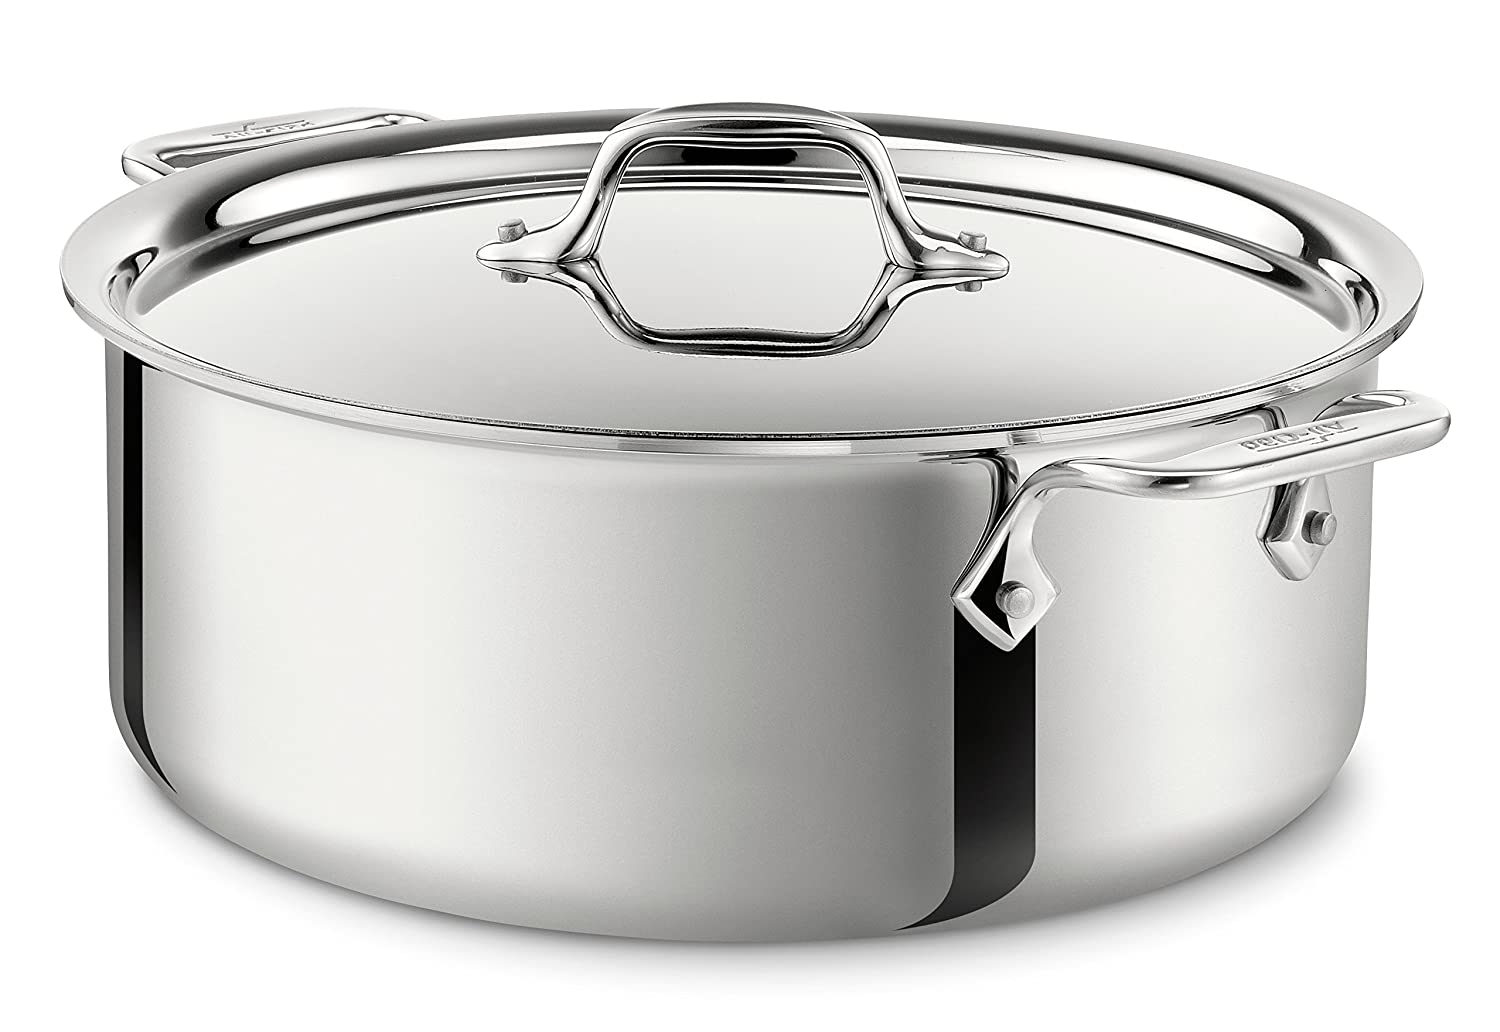 Amazon.com: All-Clad 4506 Stainless Steel Tri-Ply Bonded ...